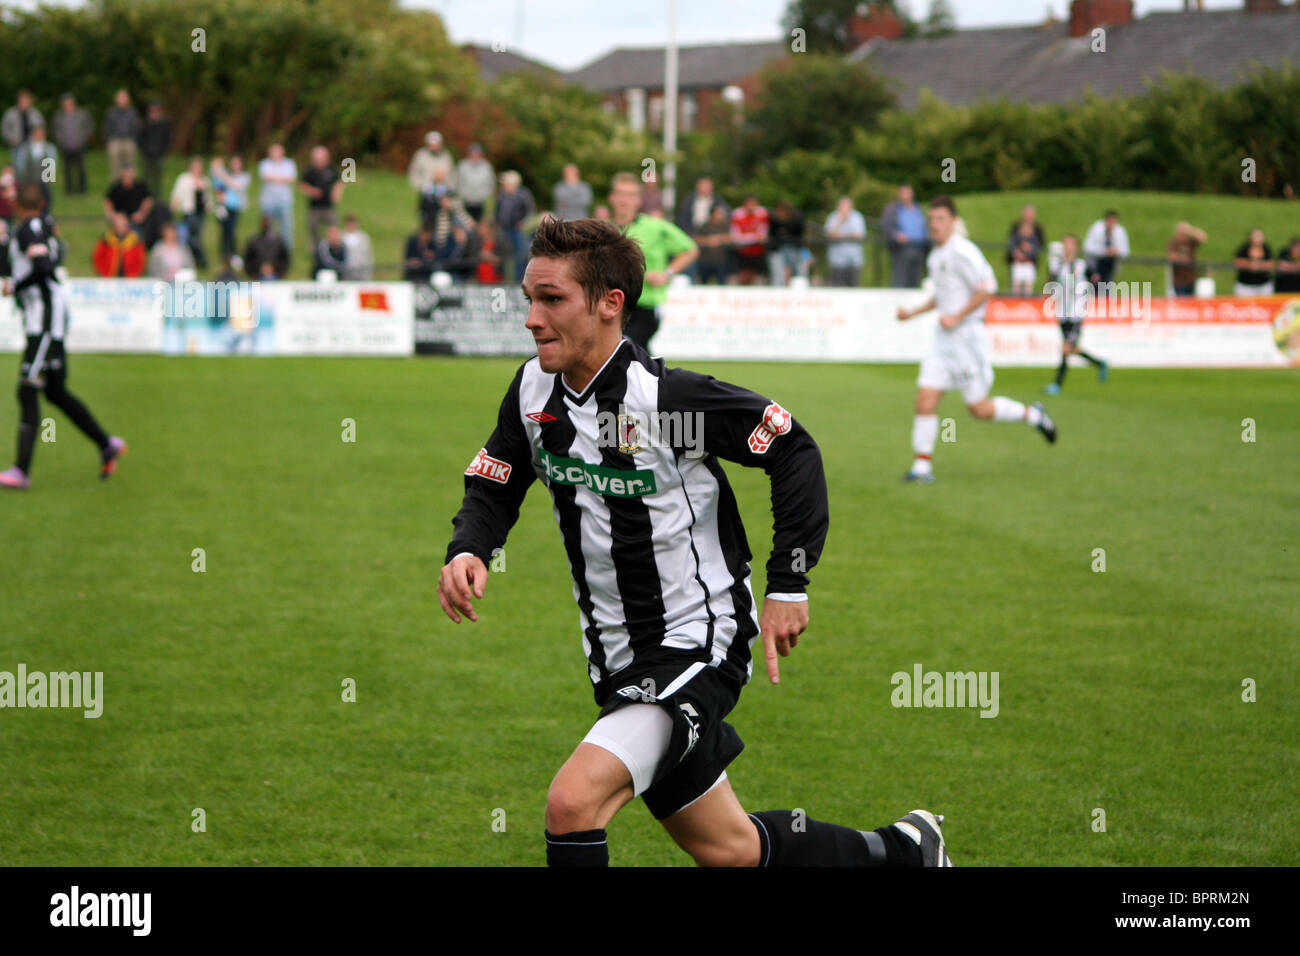 Non League Stadium High Resolution Stock Photography And Images Alamy